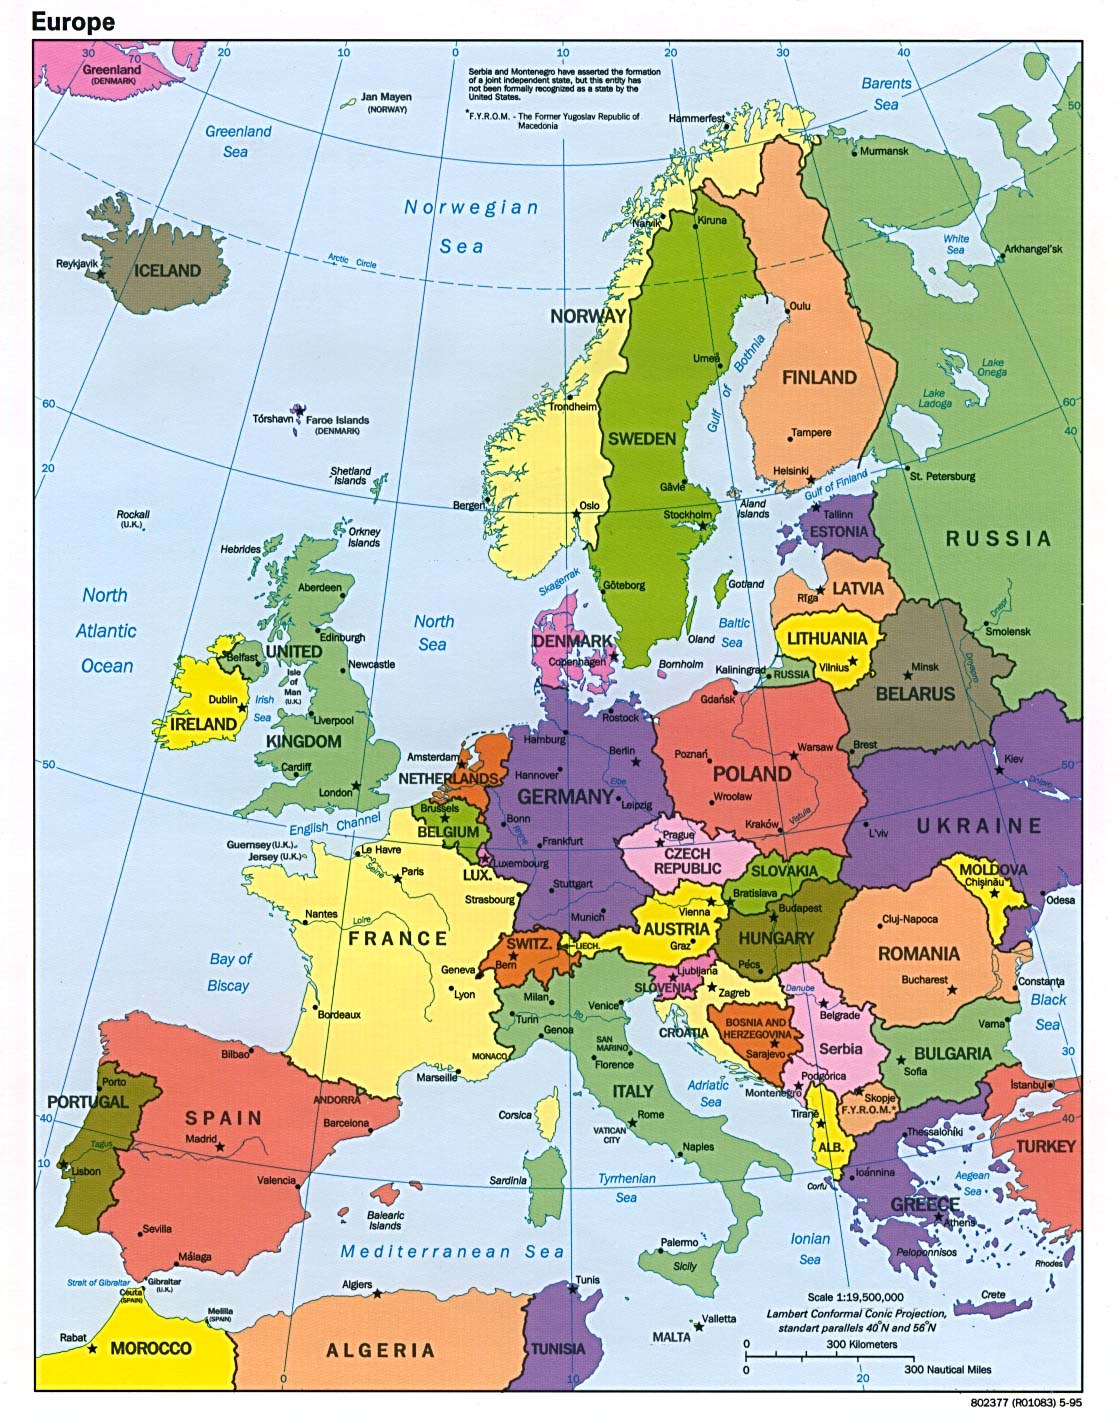 Europe political map 1995